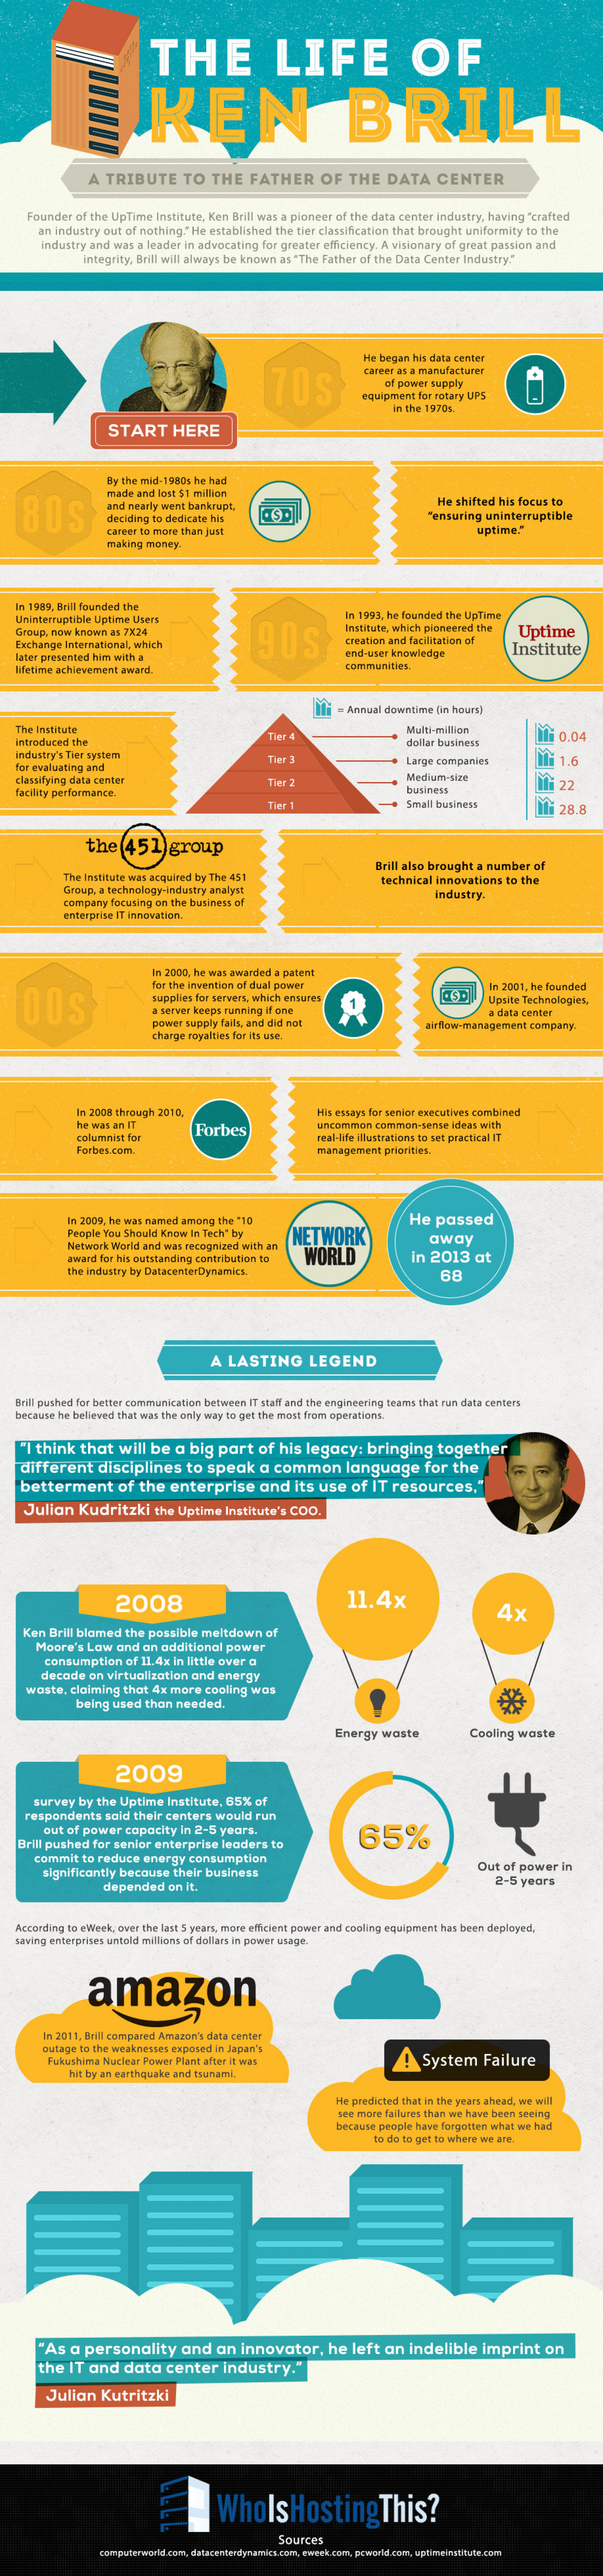 The Life of Ken Brill Infographic